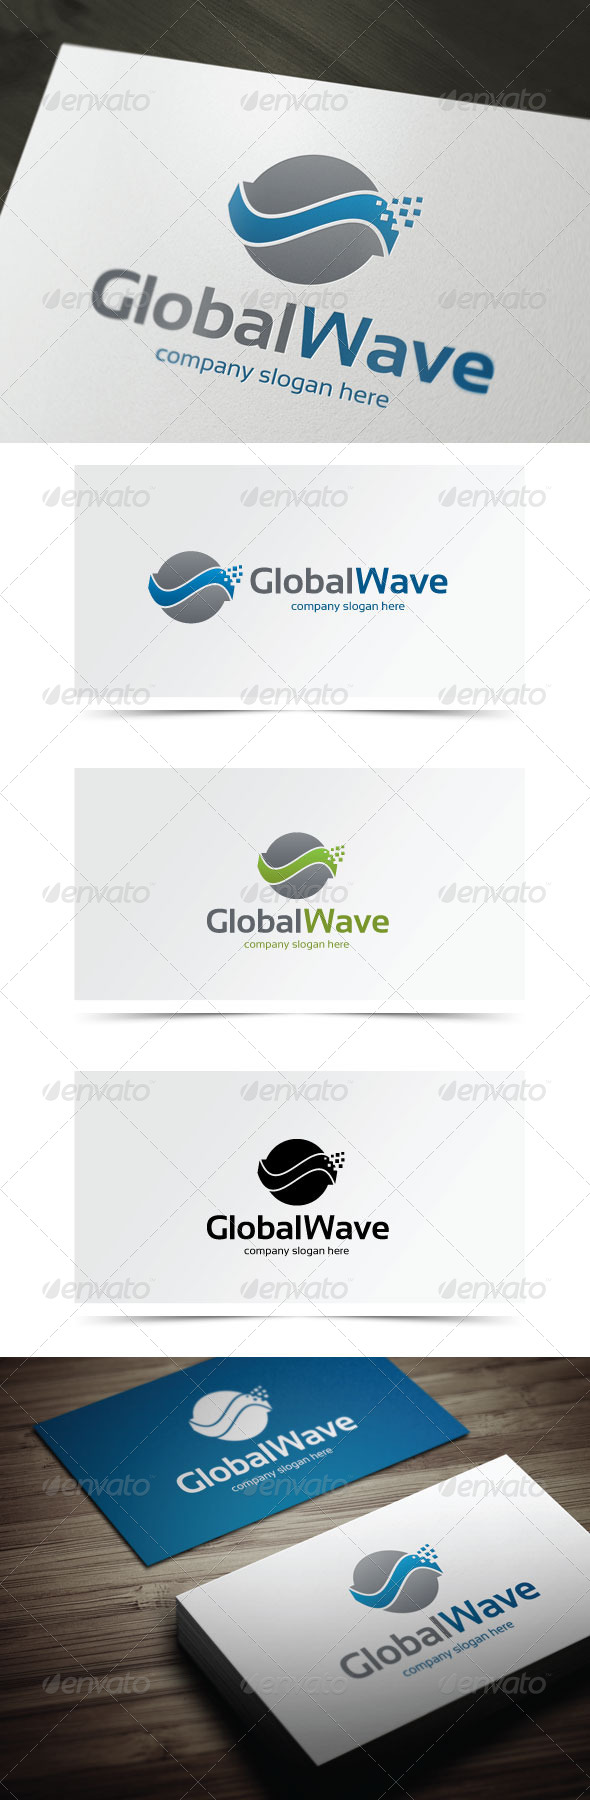 GraphicRiver Global Wave 5822266